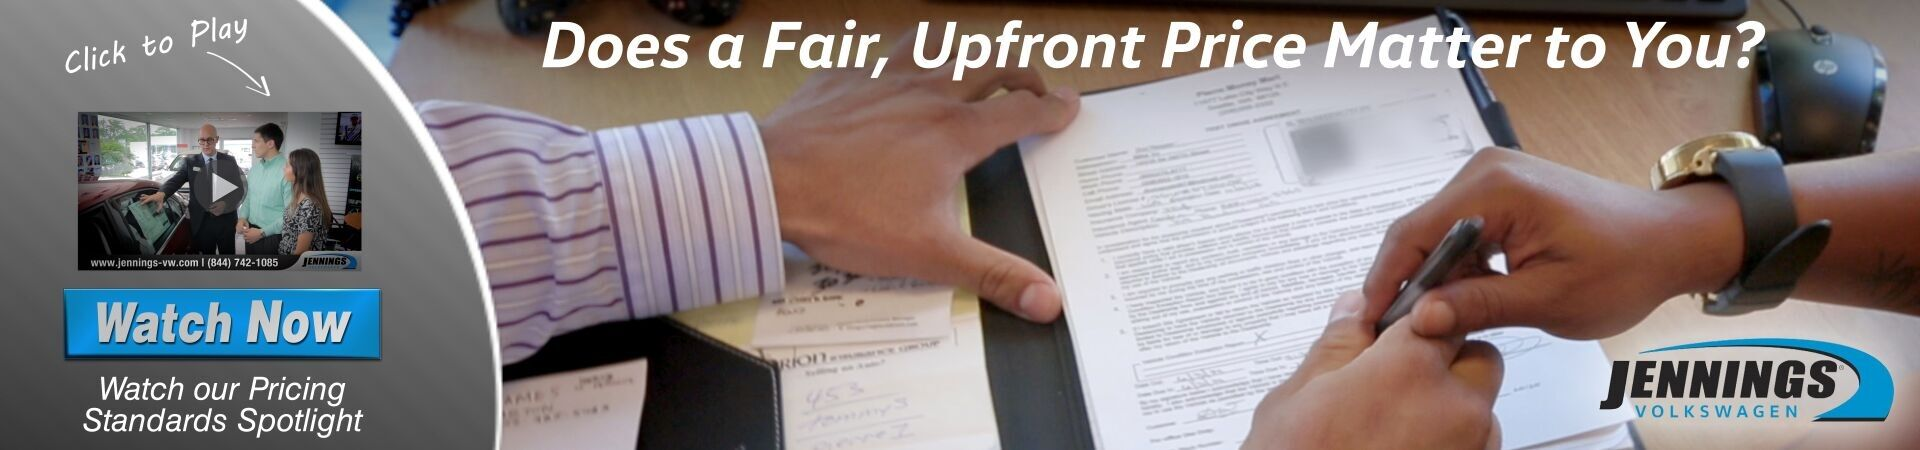 Fair & Upfront Pricing